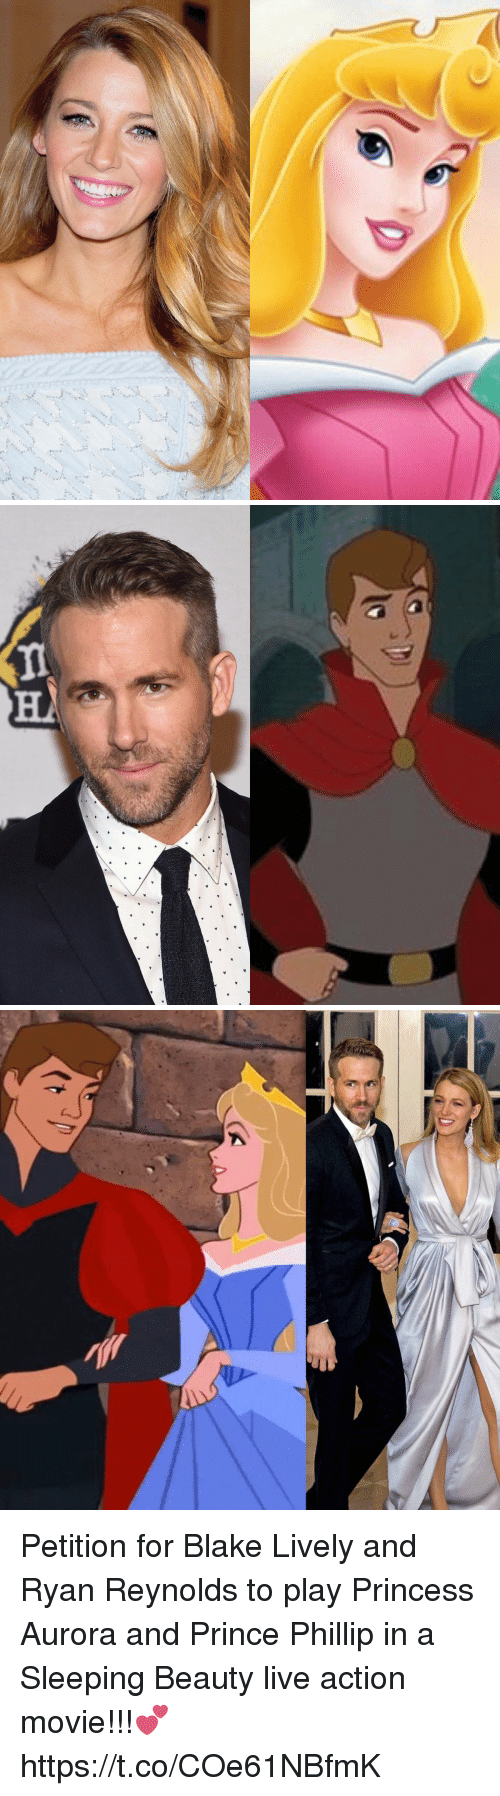 Prince, Sleeping Beauty, and Ryan Reynolds: Petition for Blake Lively and Ryan Reynolds to play Princess Aurora and Prince Phillip in a Sleeping Beauty live action movie!!!💕 https://t.co/COe61NBfmK